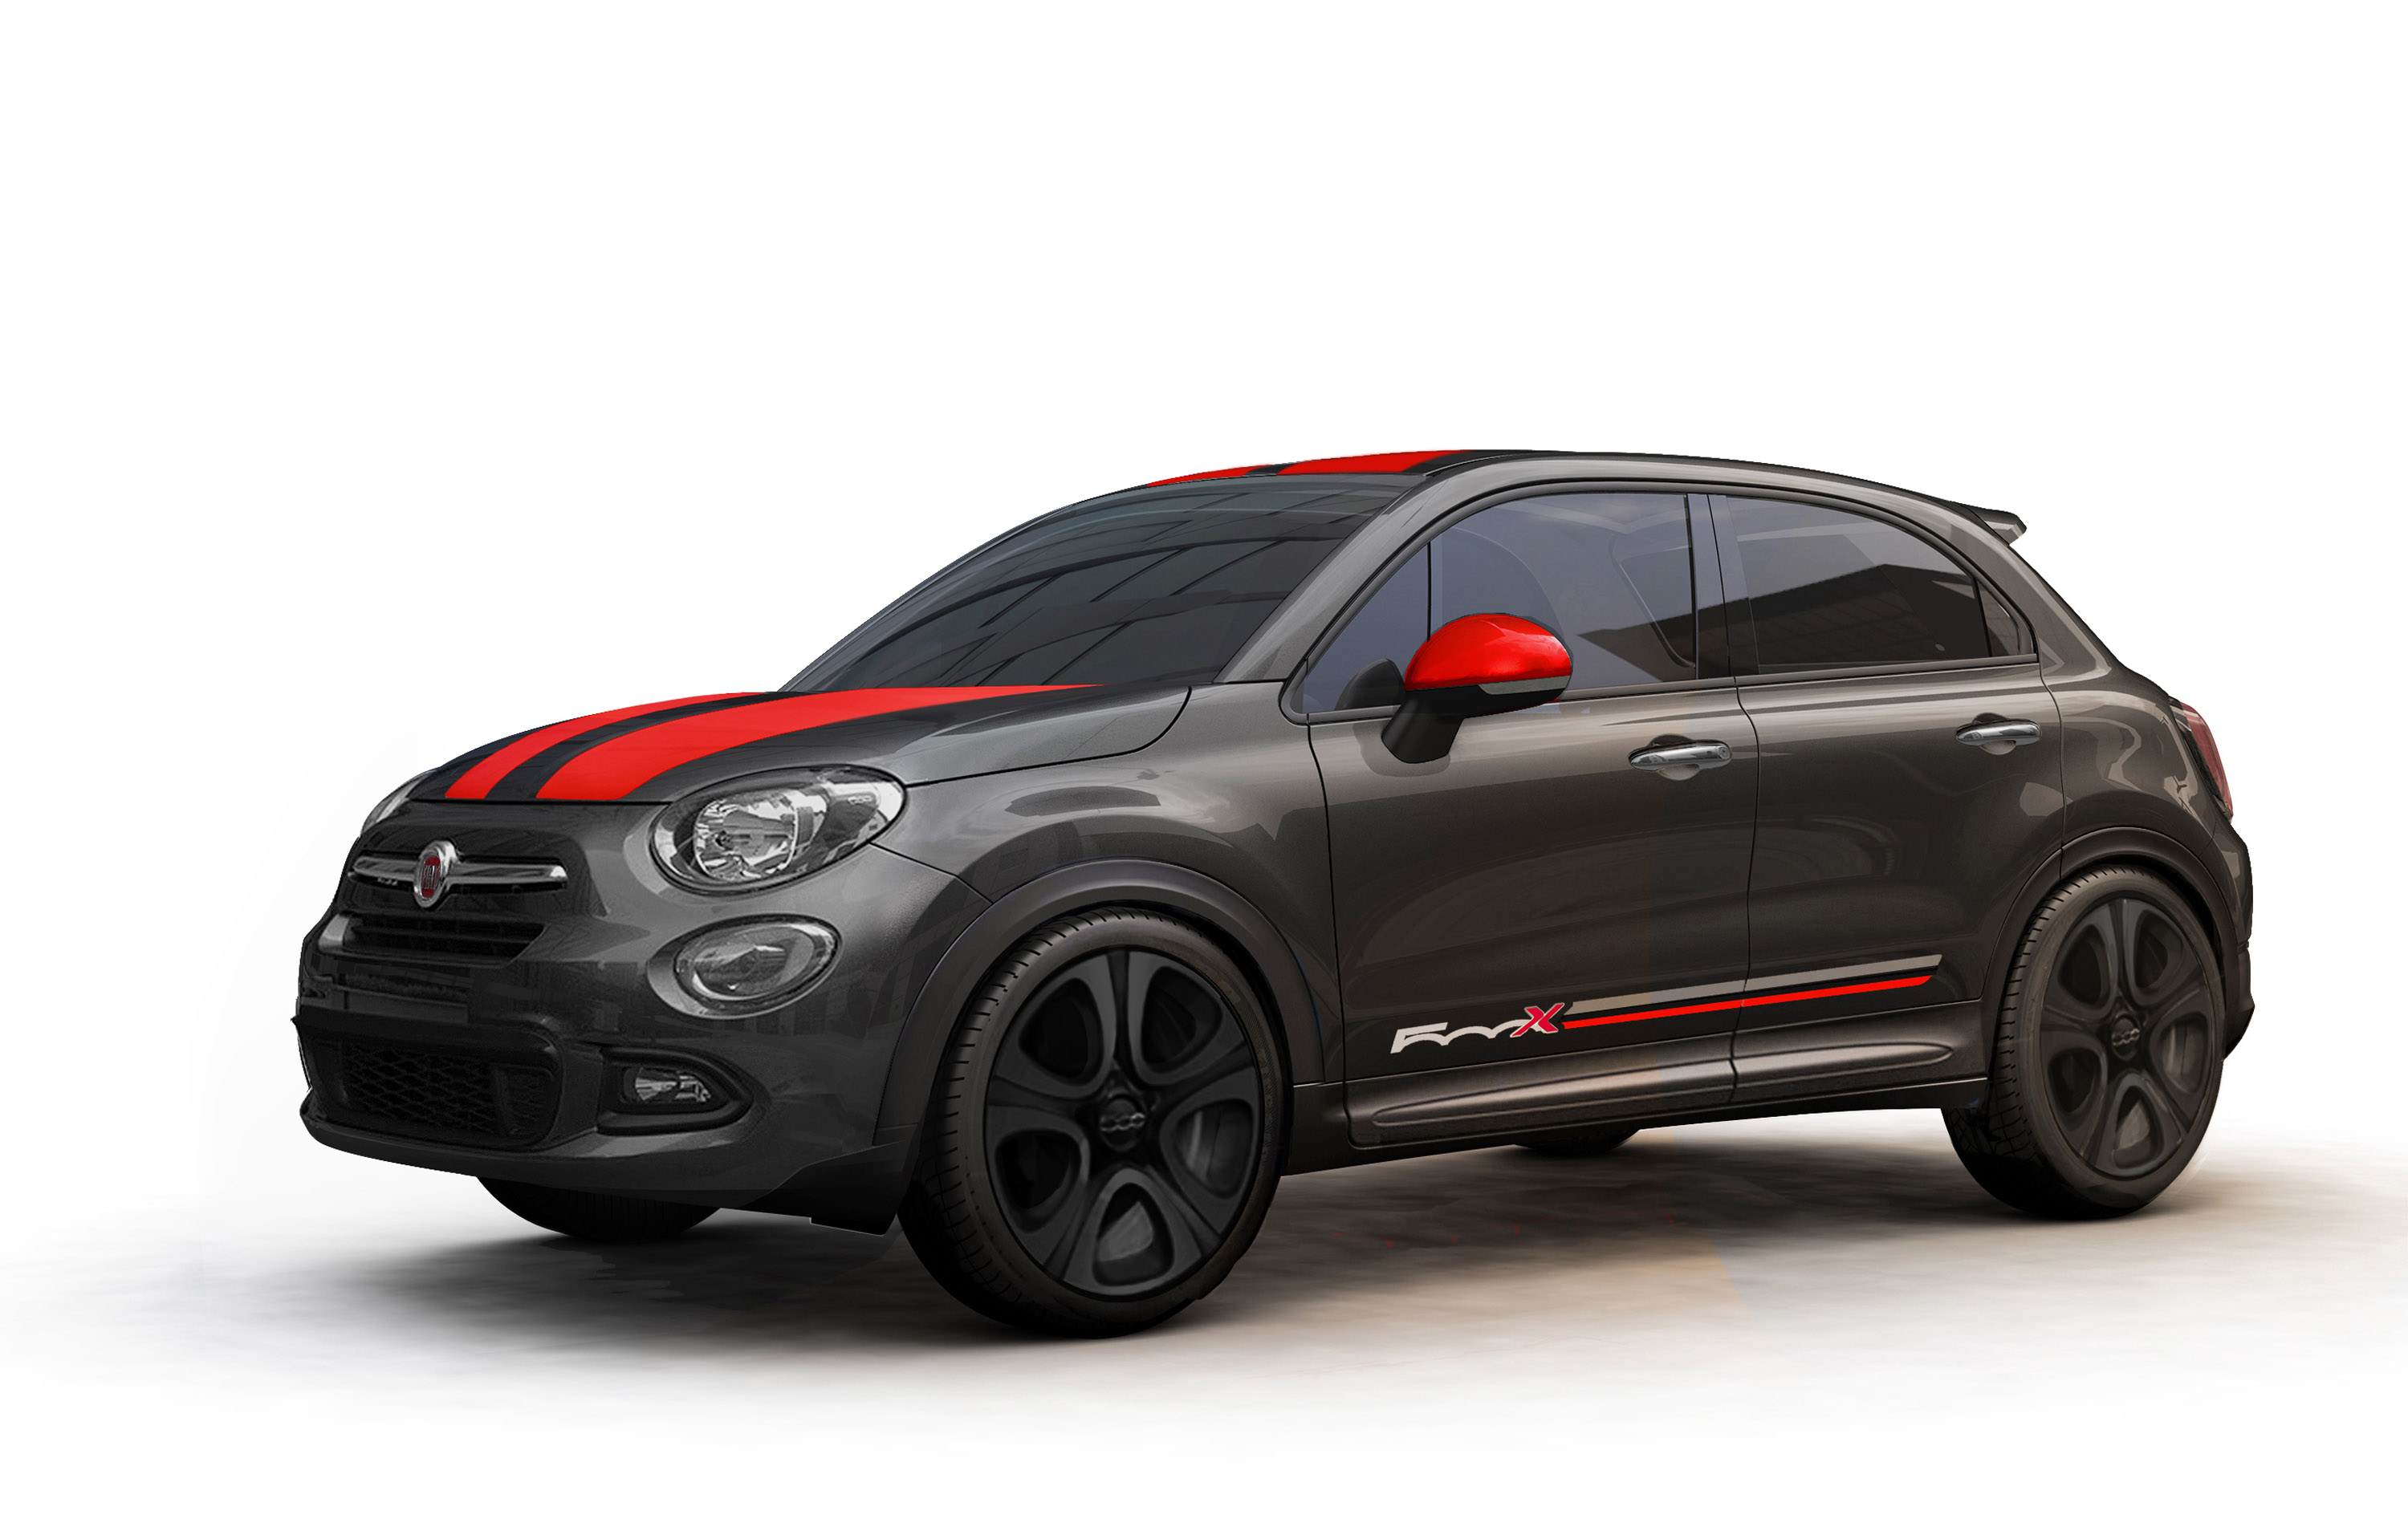 mopar releases accessories for 2016 fiat 500x. Black Bedroom Furniture Sets. Home Design Ideas